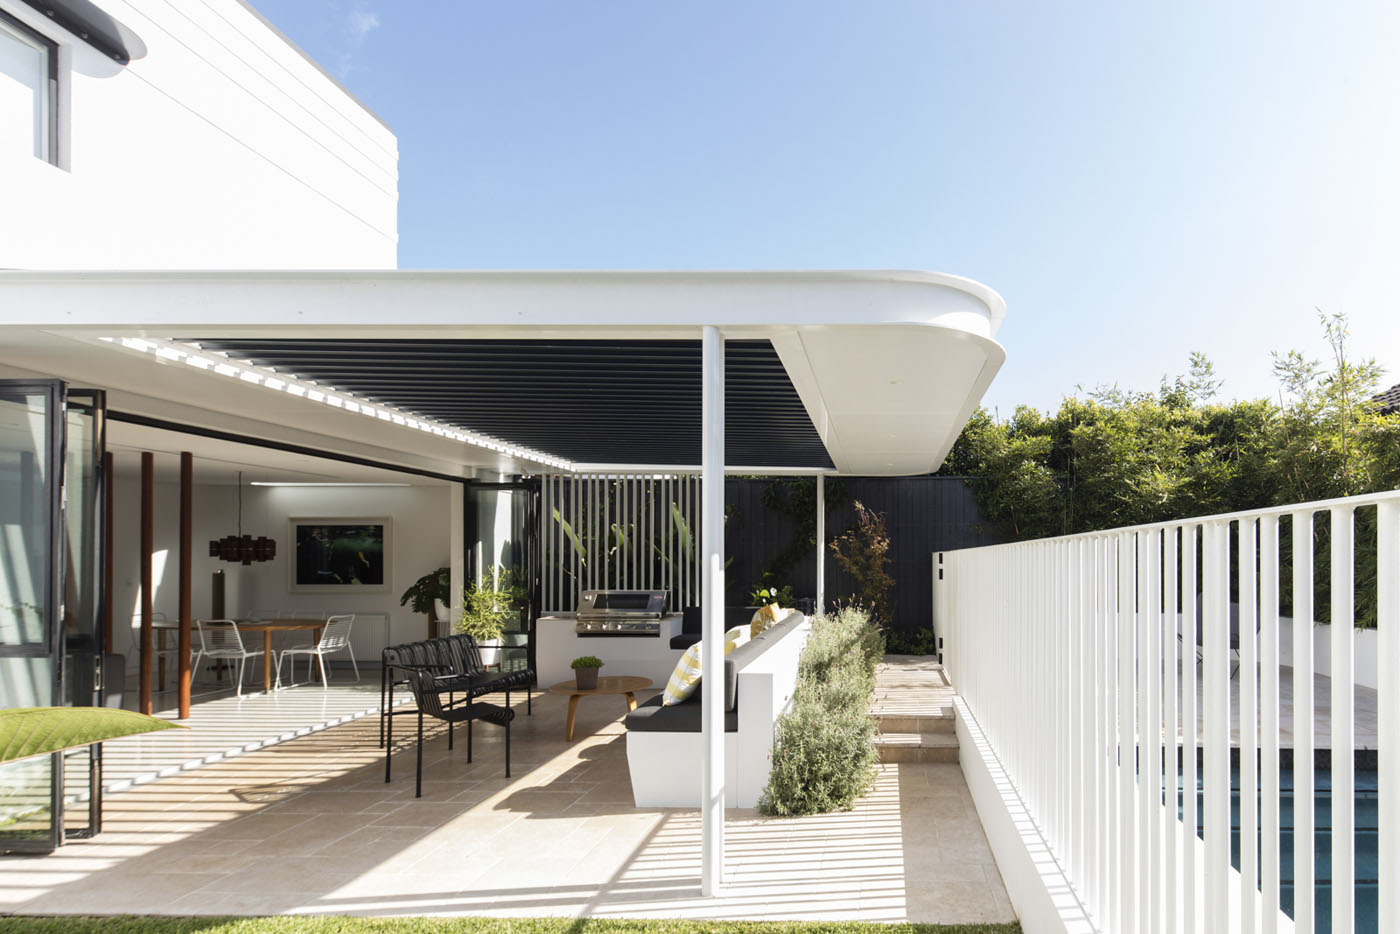 Conway Atkins House in Dover Heights by Sydney architect Sam Crawford Architect. The yard has been re-landscaped creating an oasis from Sydney's busy lifestyle.